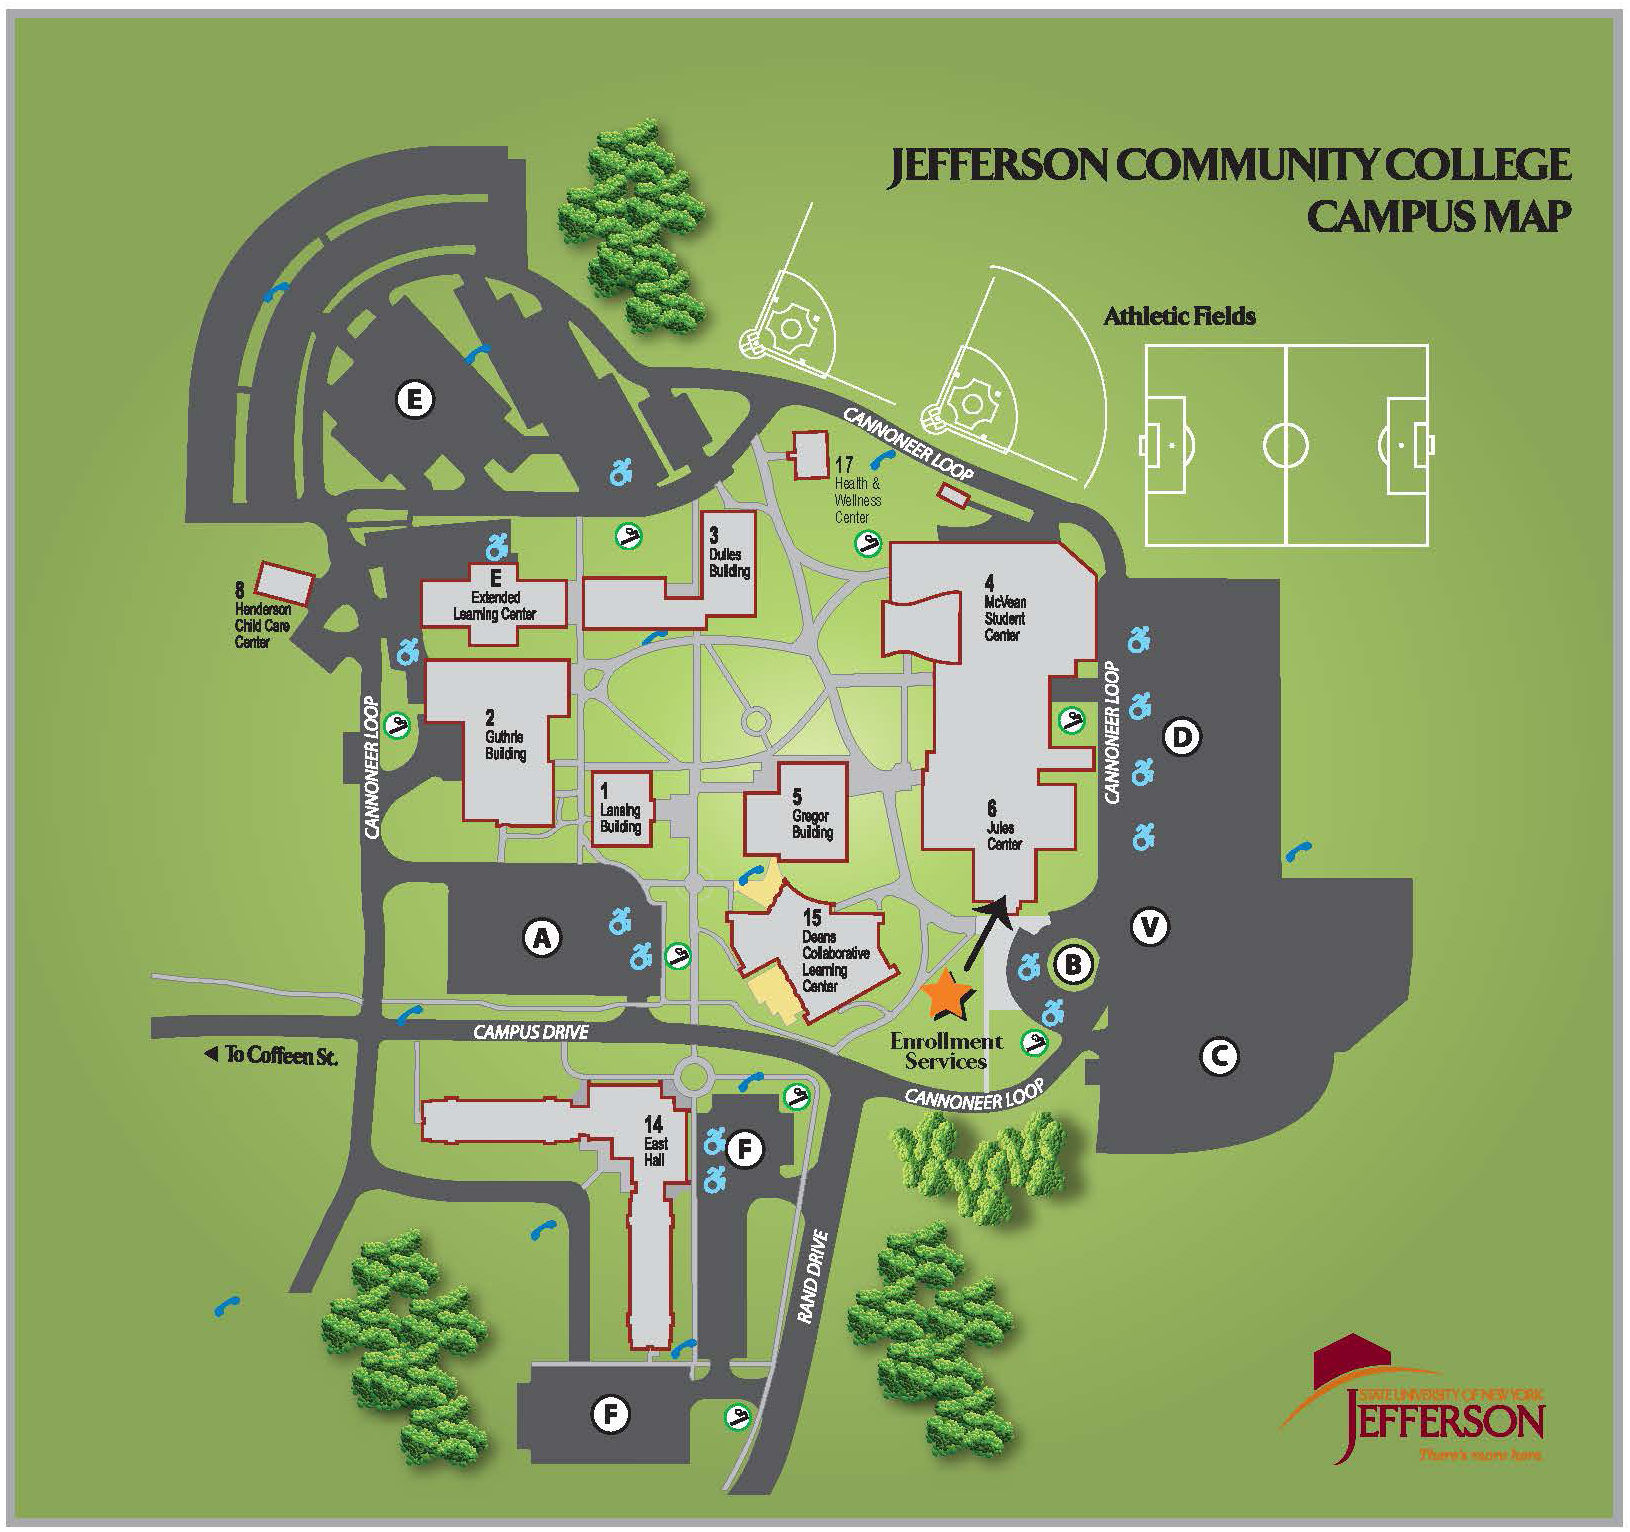 Jefferson Community College Campus Map